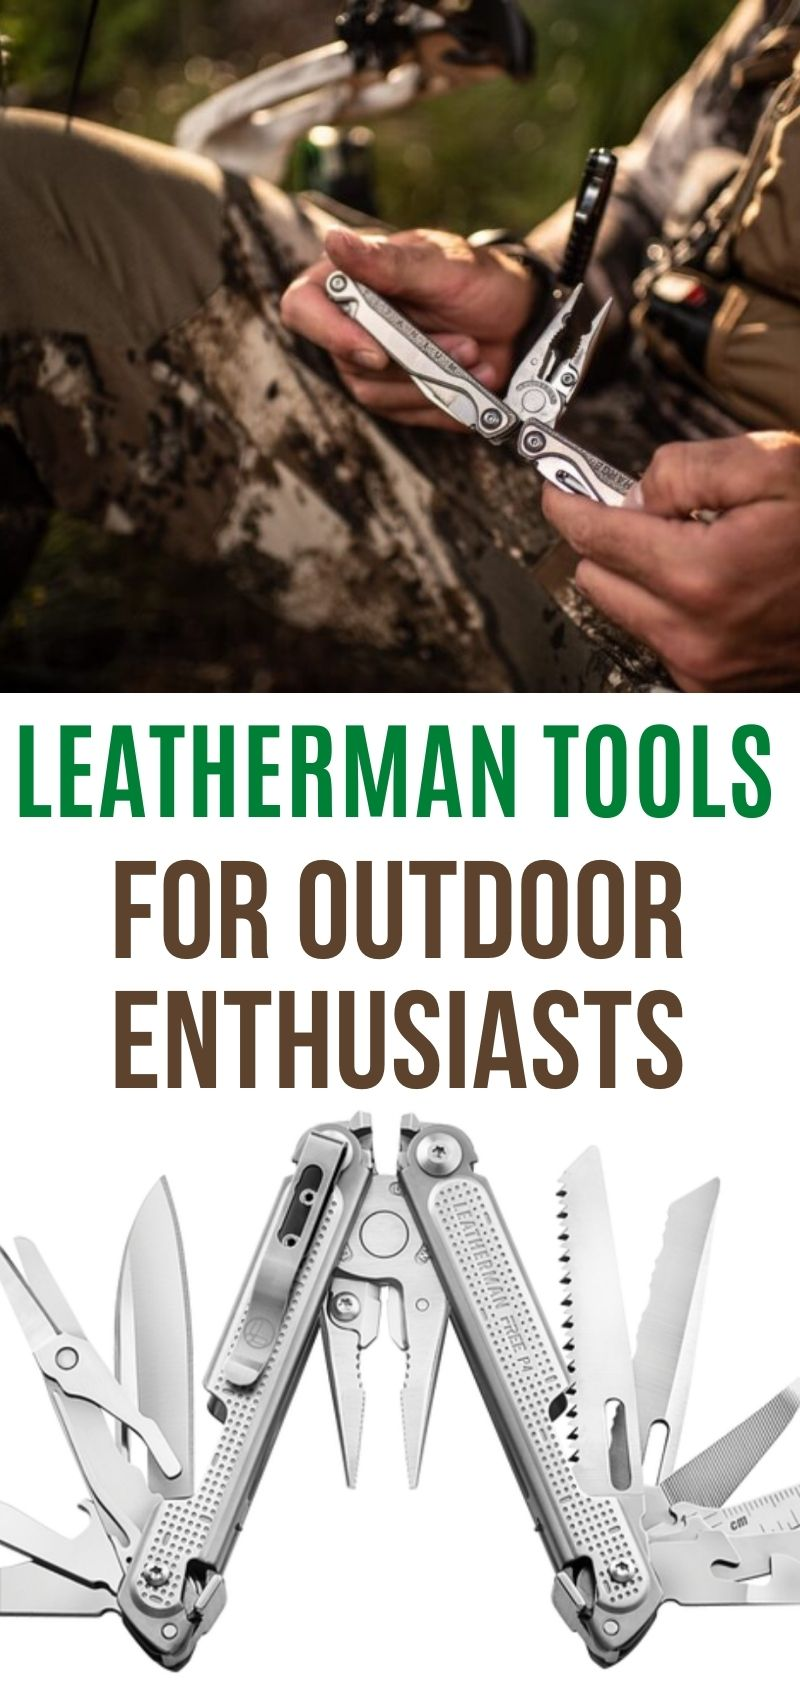 LEATHERMAN TOOLS FOR OUTDOOR ENTHUSIASTS